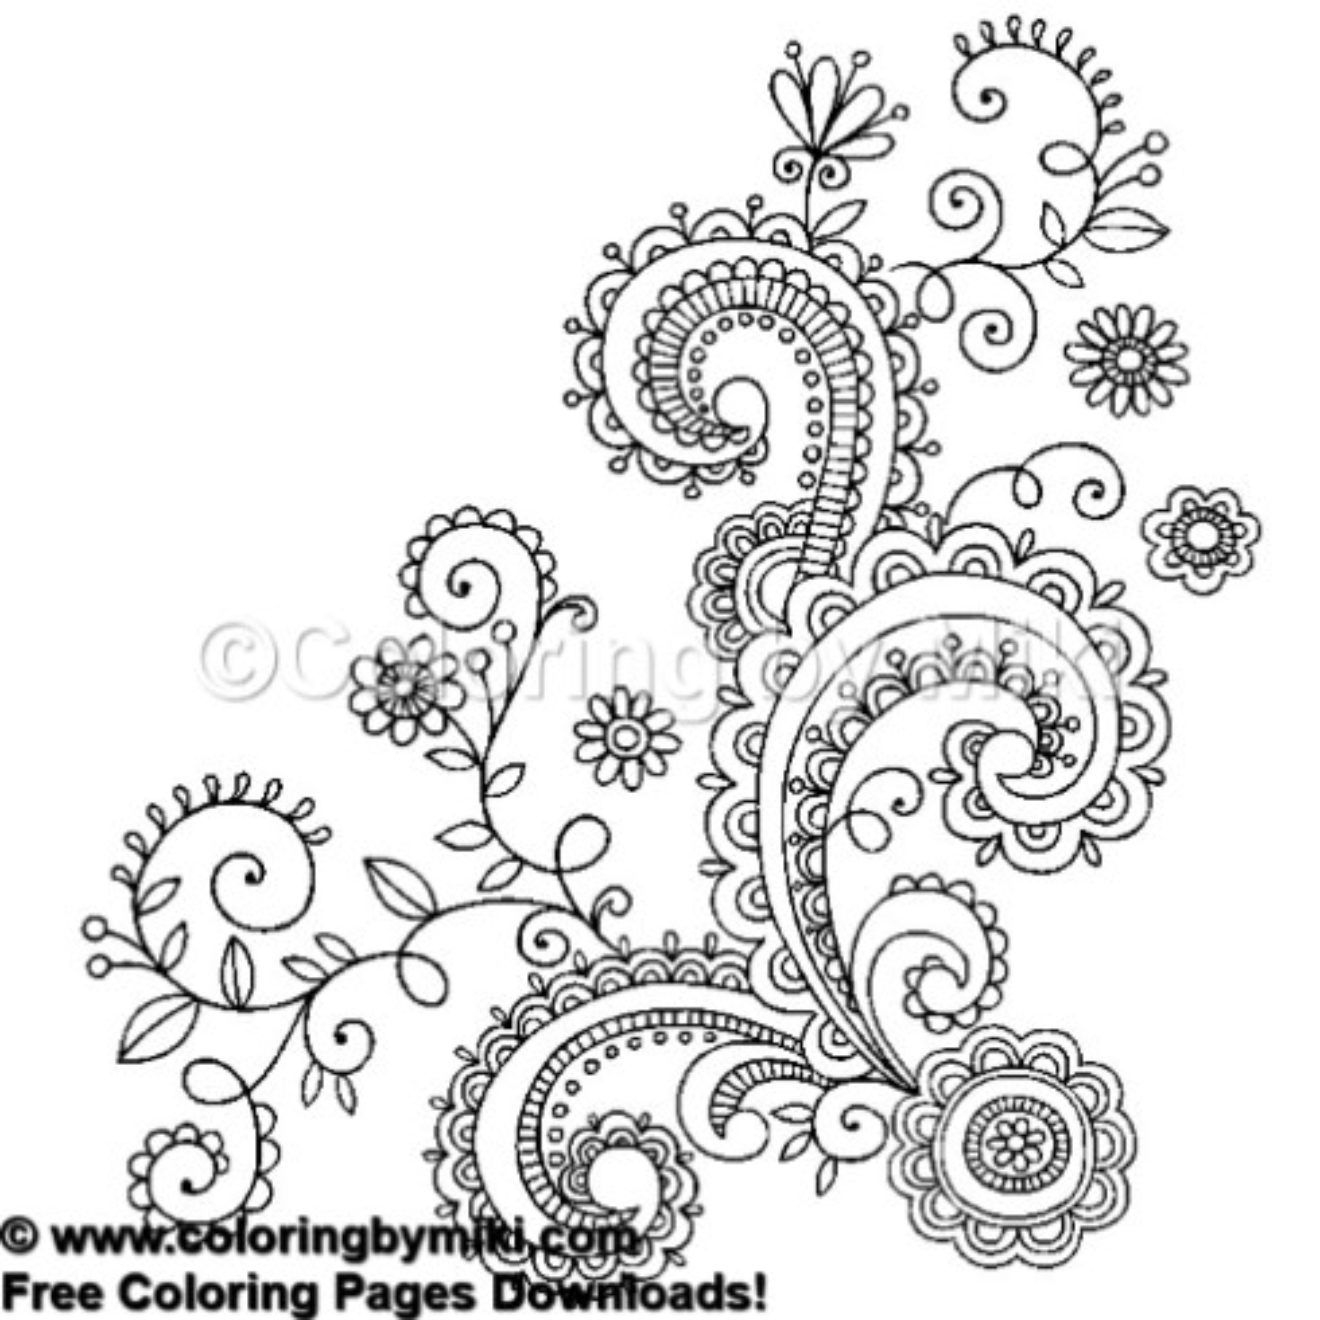 Henna Tattoo Design Coloring Page #653 | Tribal - Free Coloring - Free Printable Henna Tattoo Designs